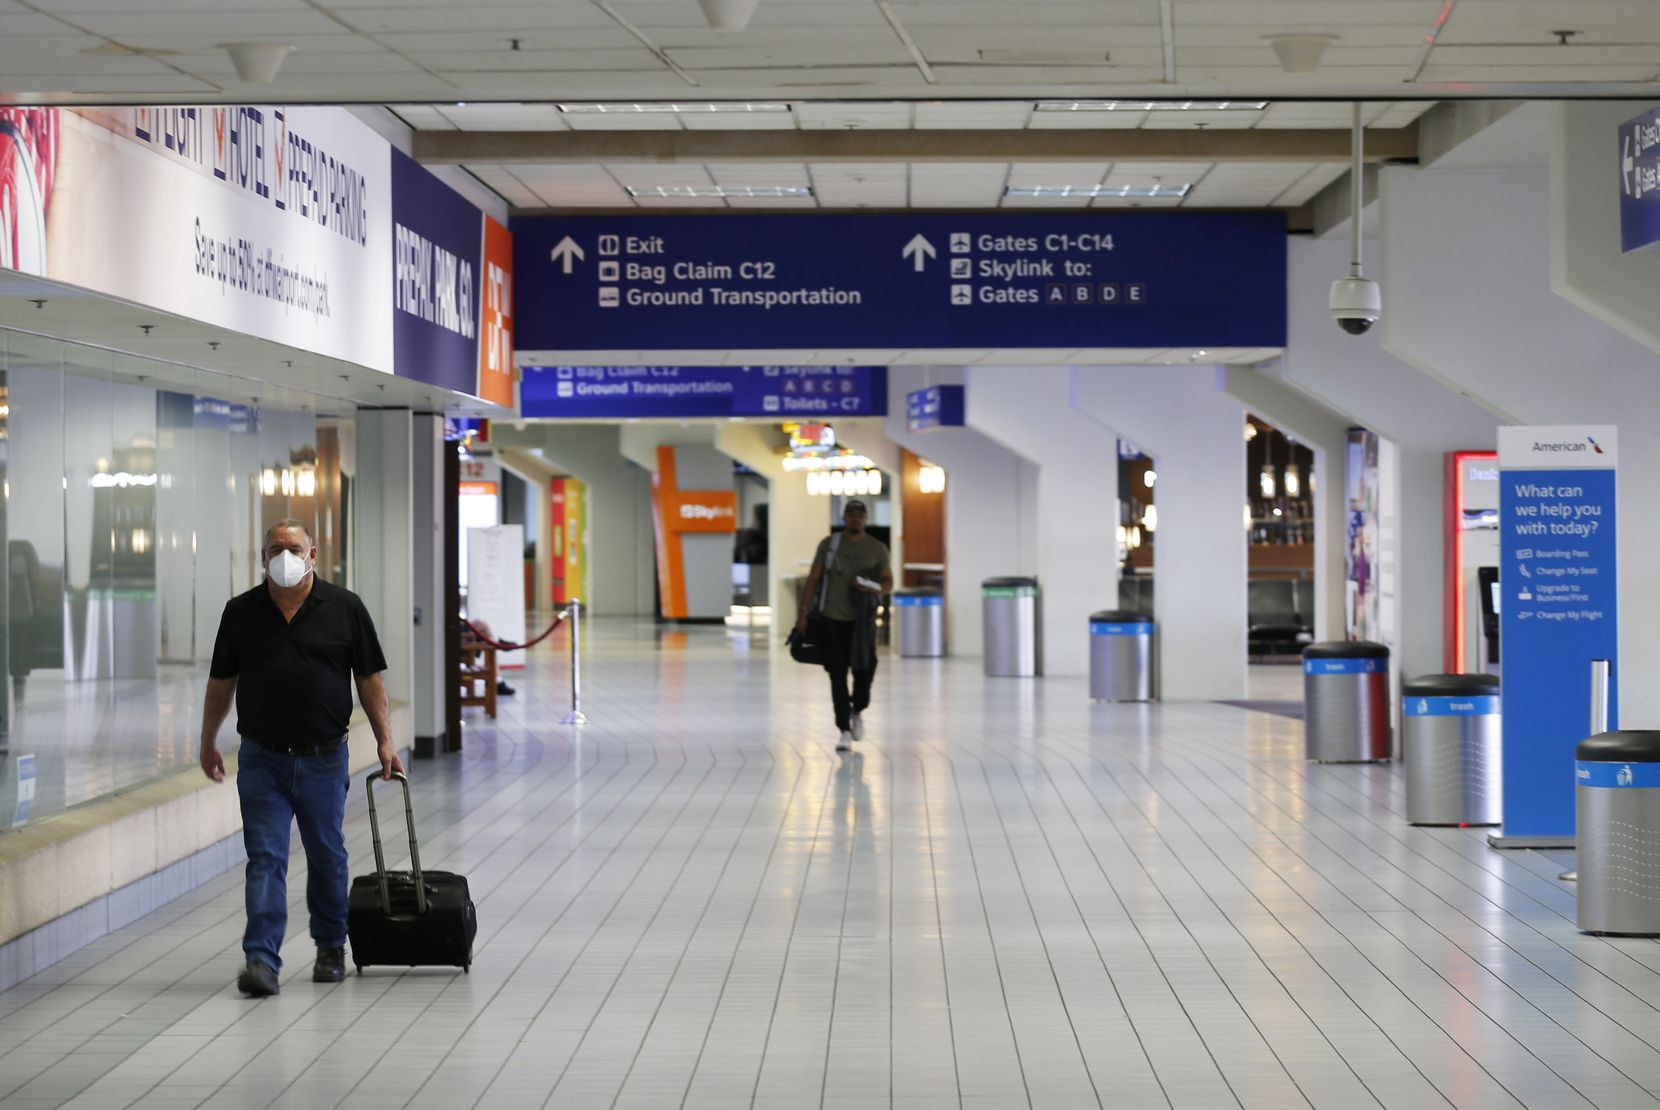 People make their way through terminal C at DFW International Airport on Wednesday, April 8, 2020.